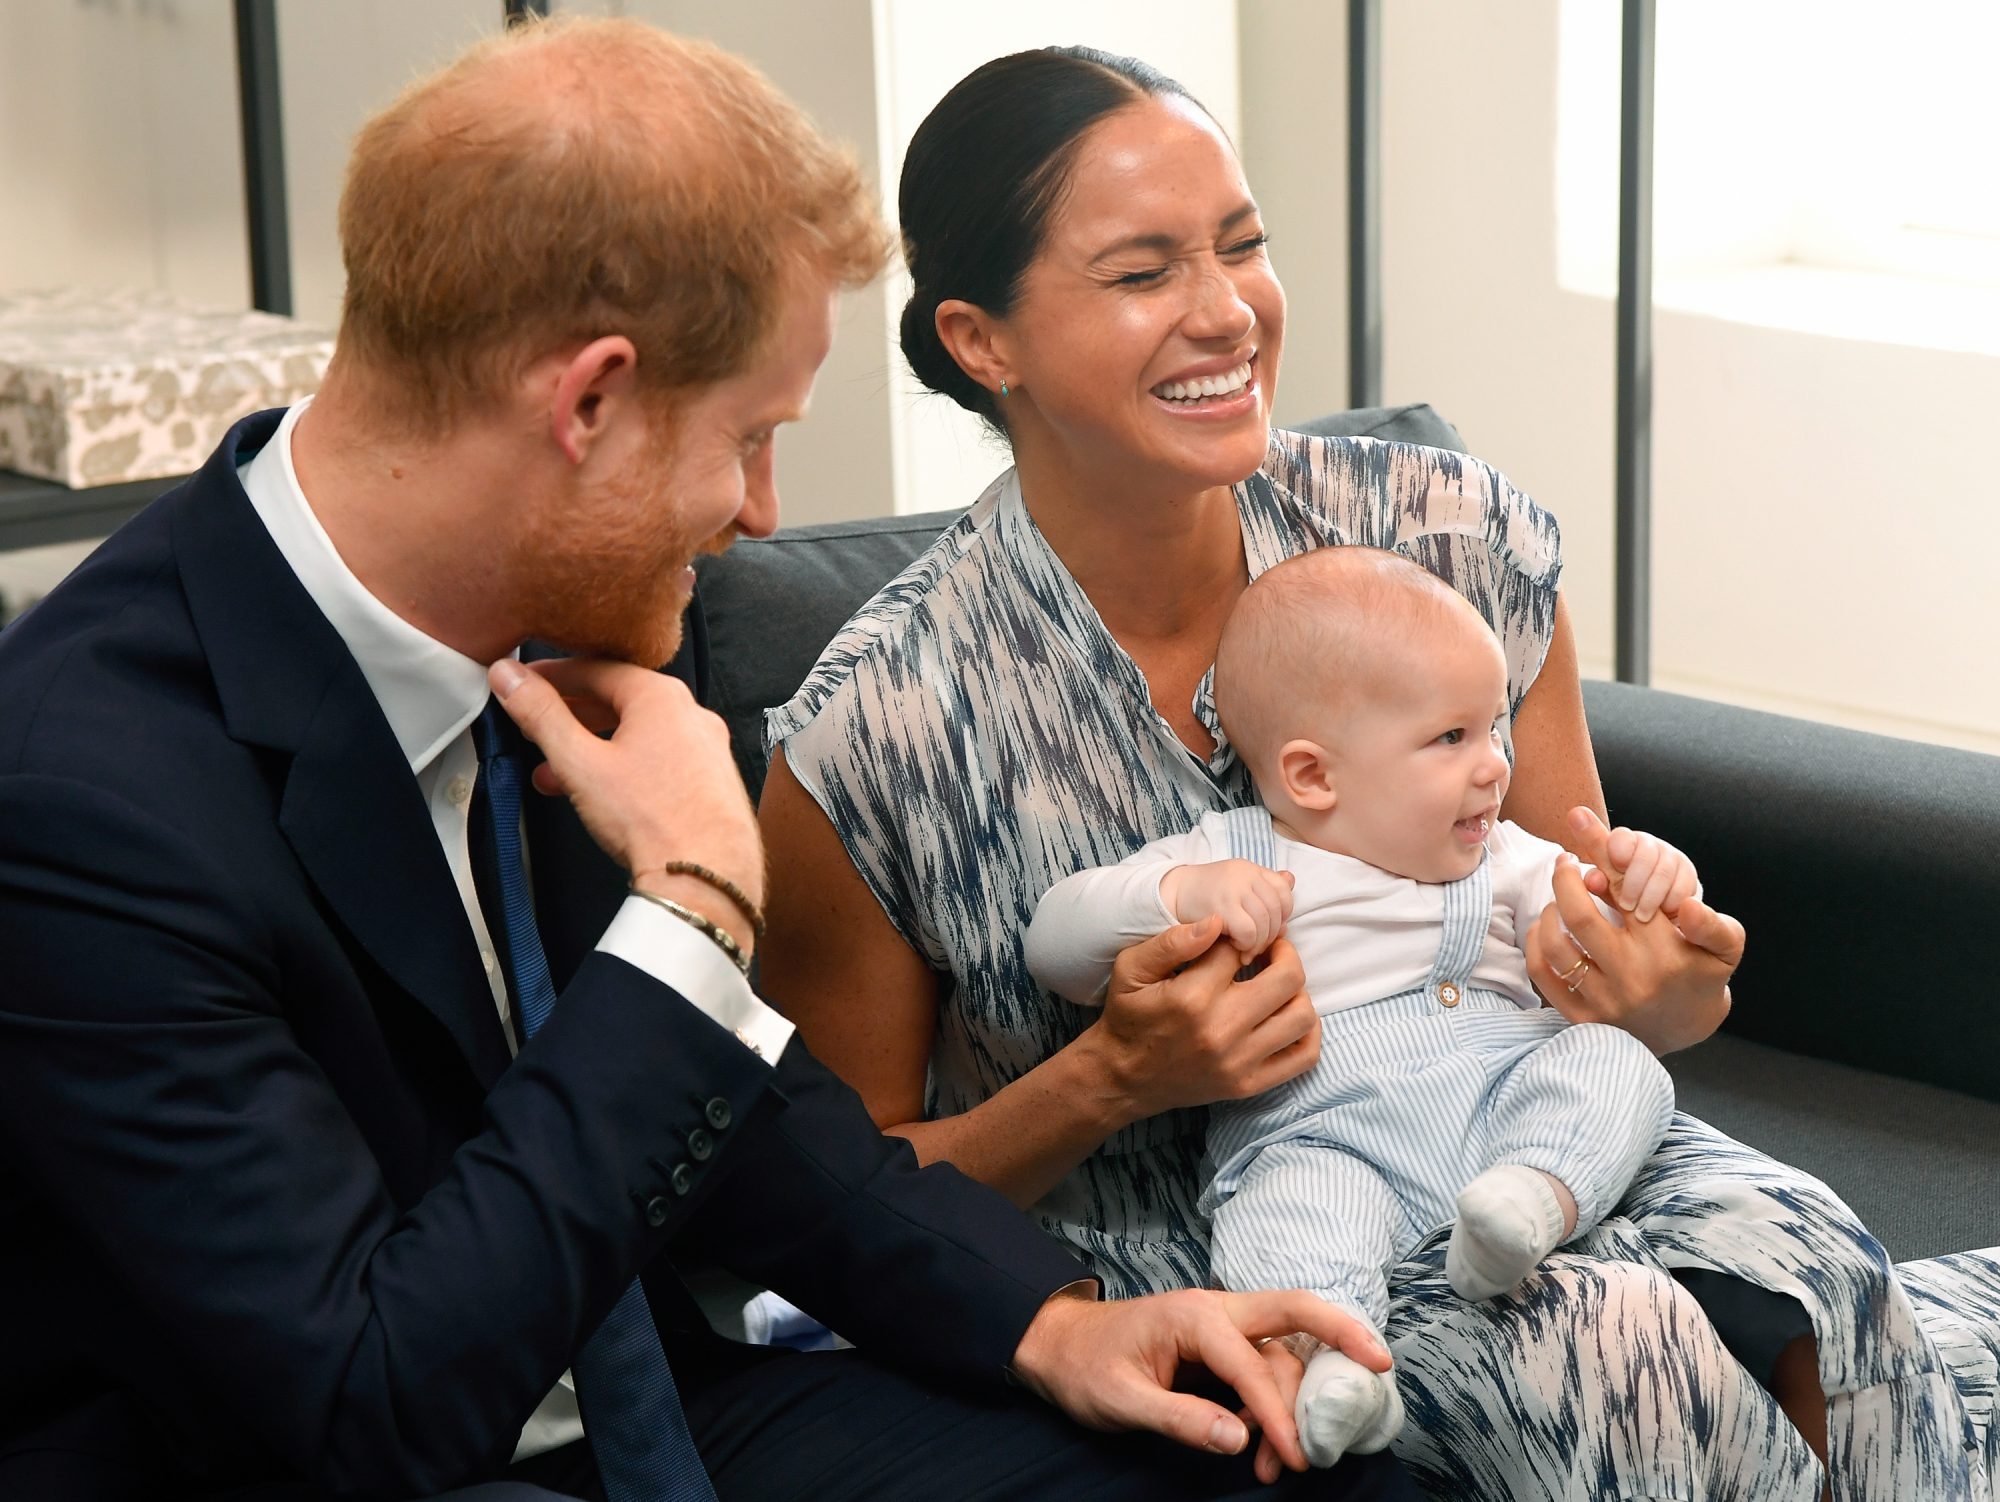 prince harry and meghan markle laughing while holding archie